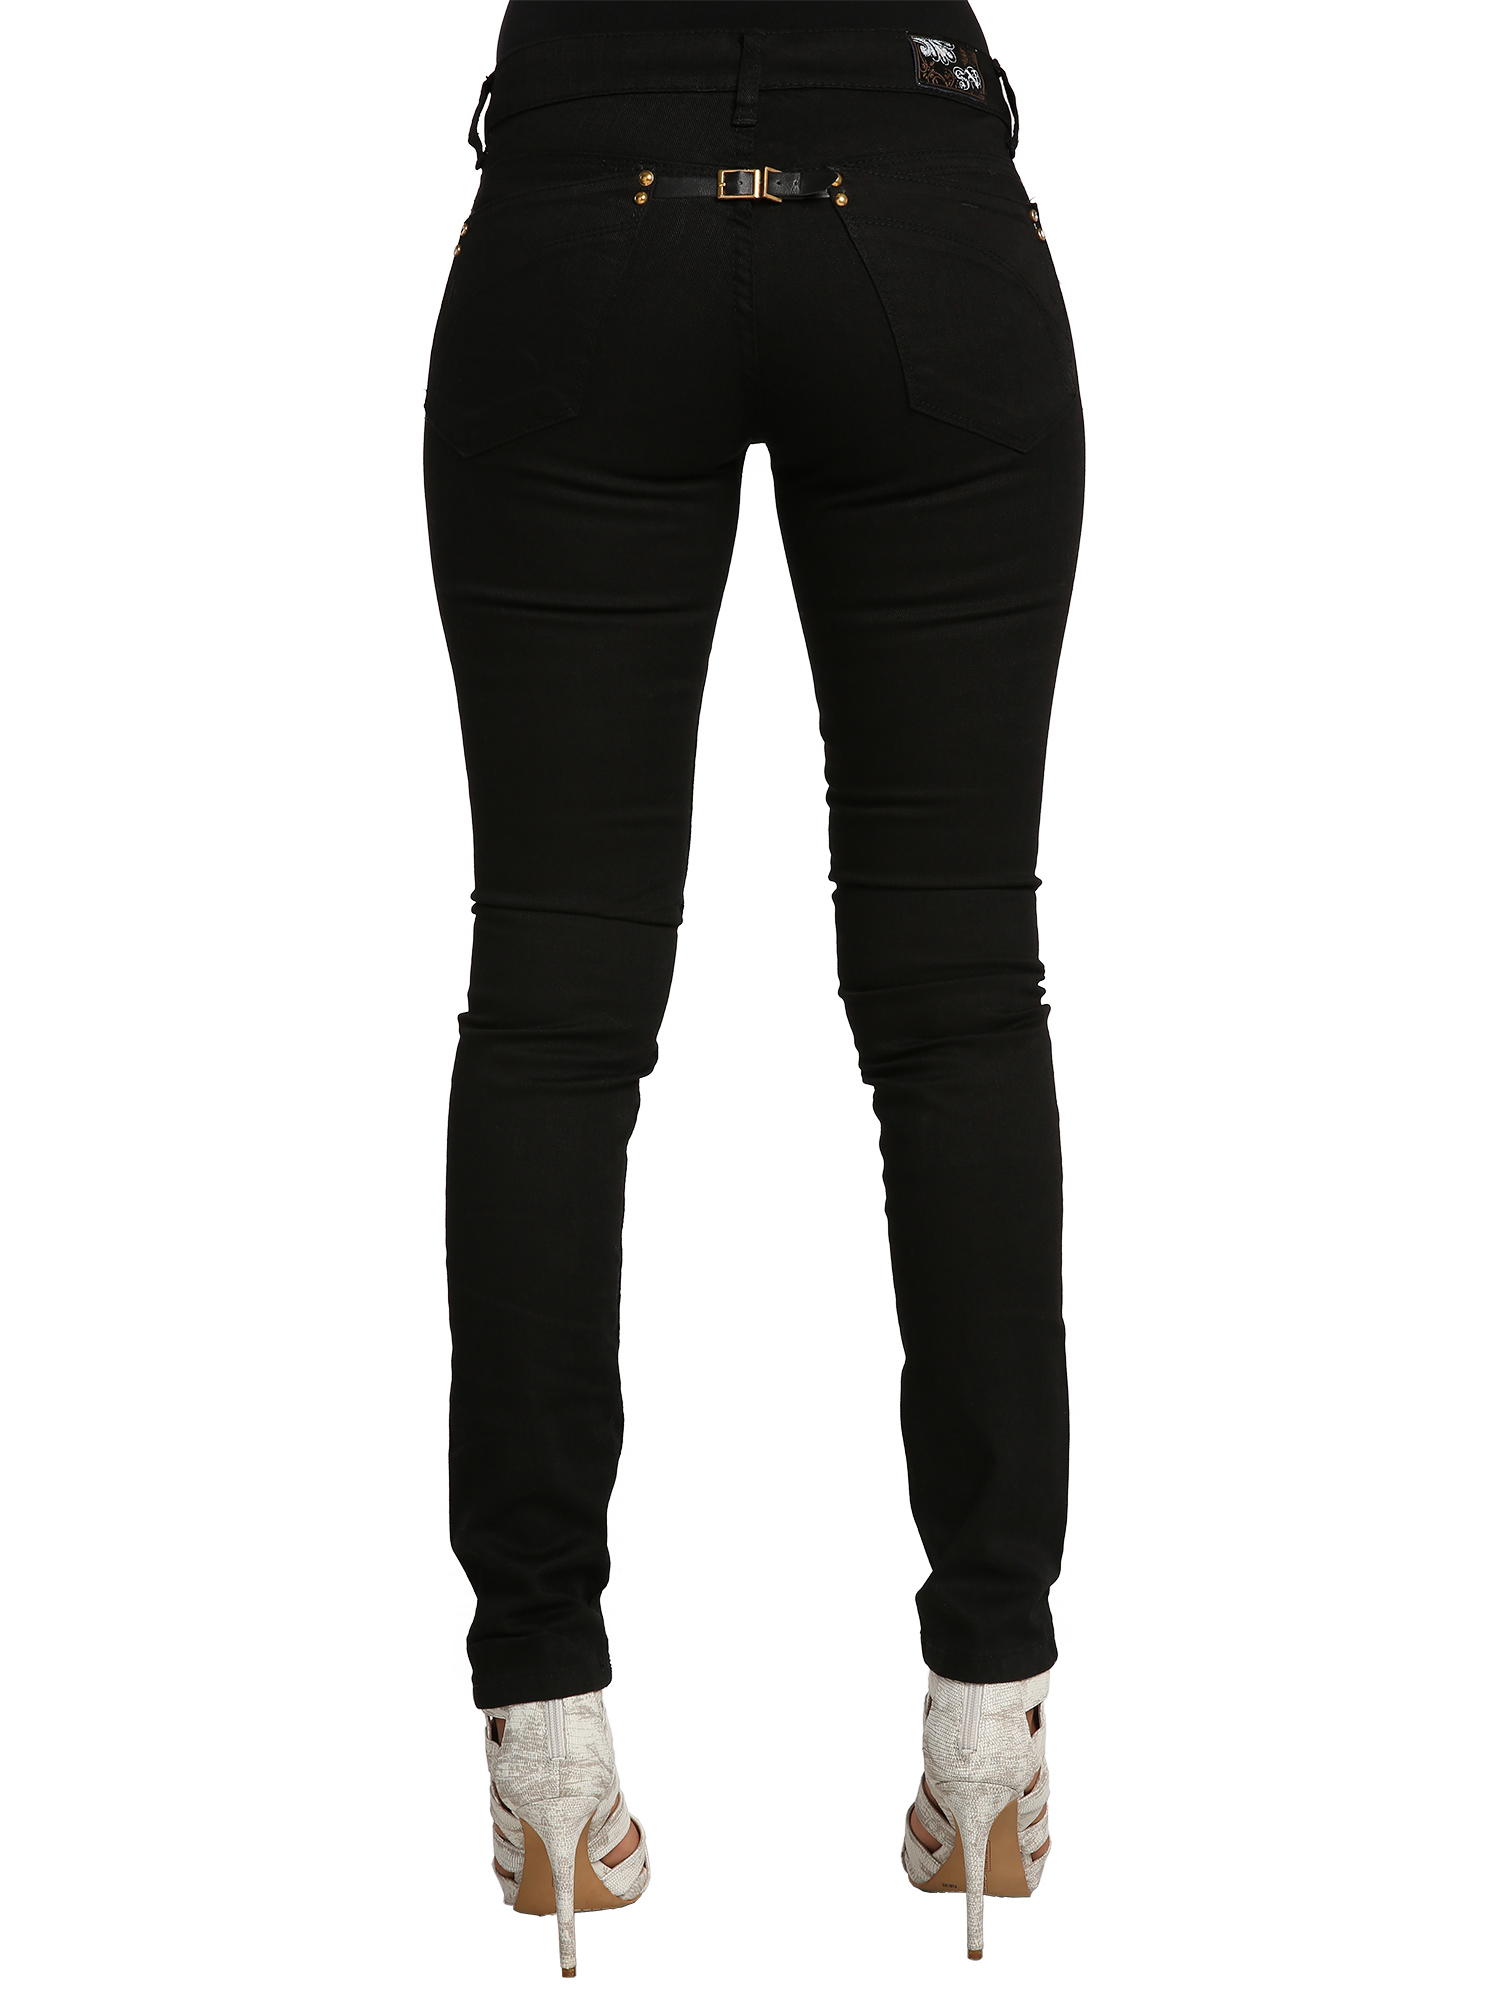 b4c0295a04 Sweet Vibes Junior Women Jeans Black Stretch Denim Straight Fit With Back  Buckle